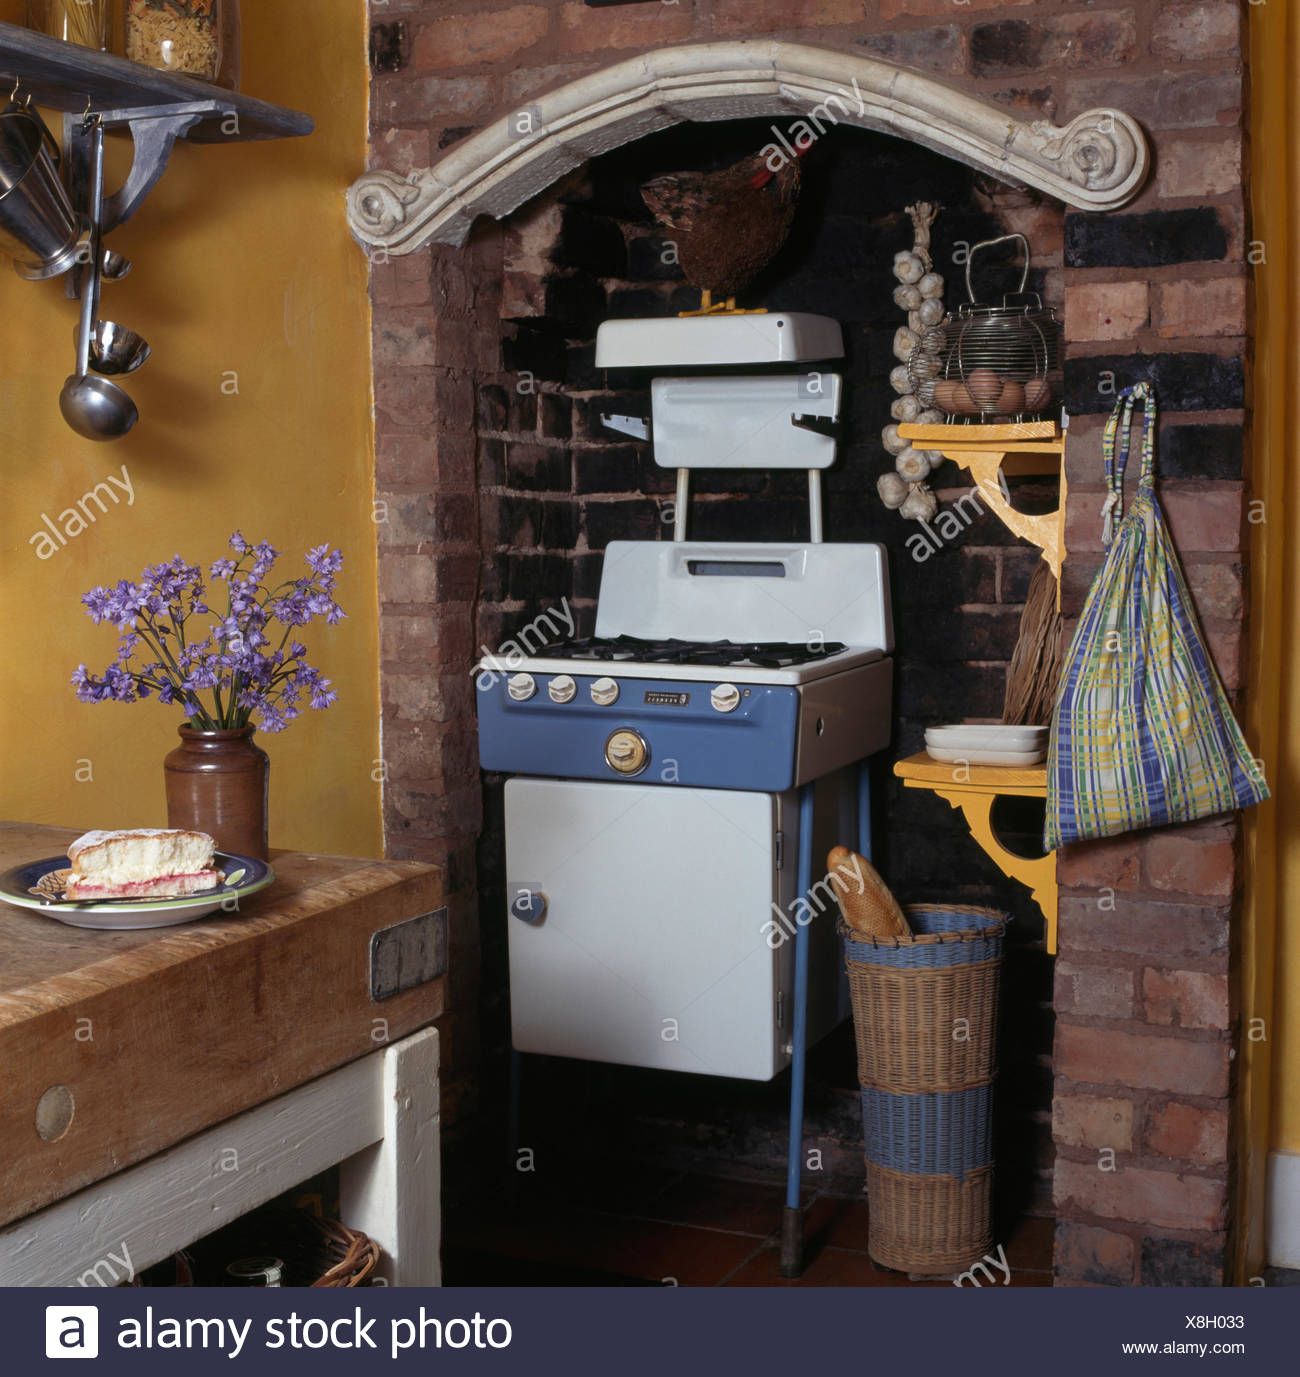 Fifties gas stove in an alcove in a nineties kitchen - Stock Image